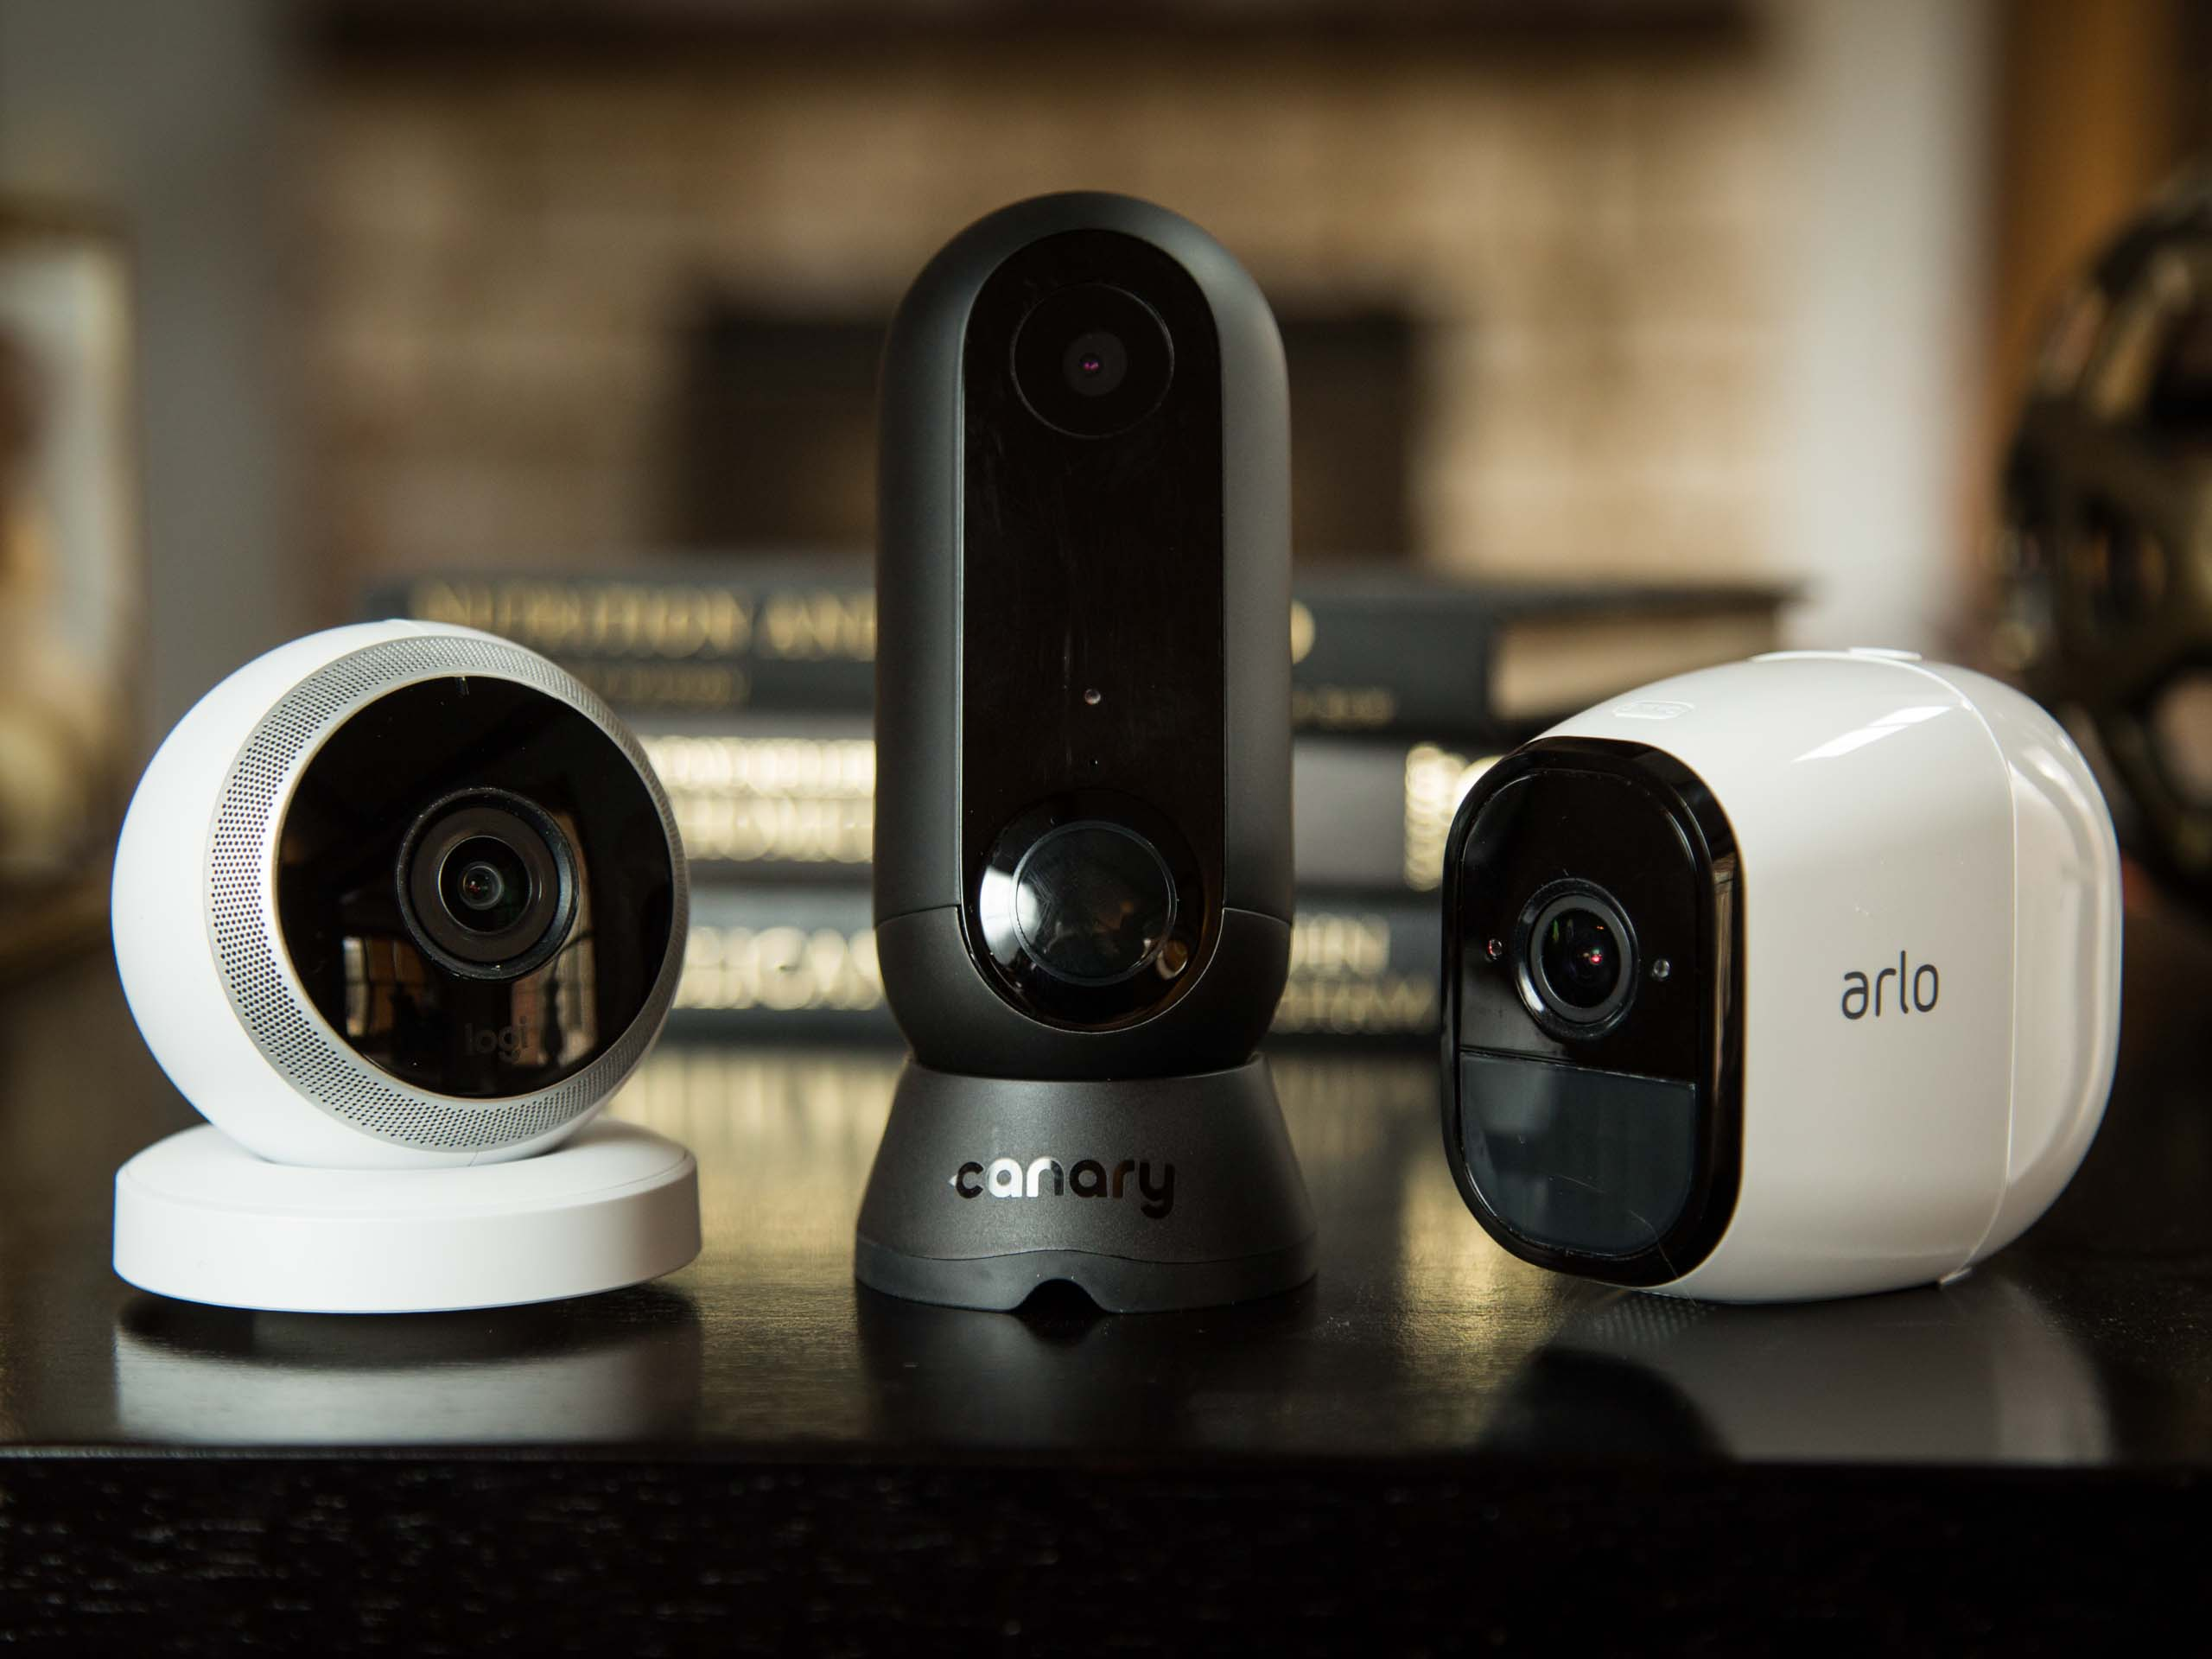 Which security camera wins?